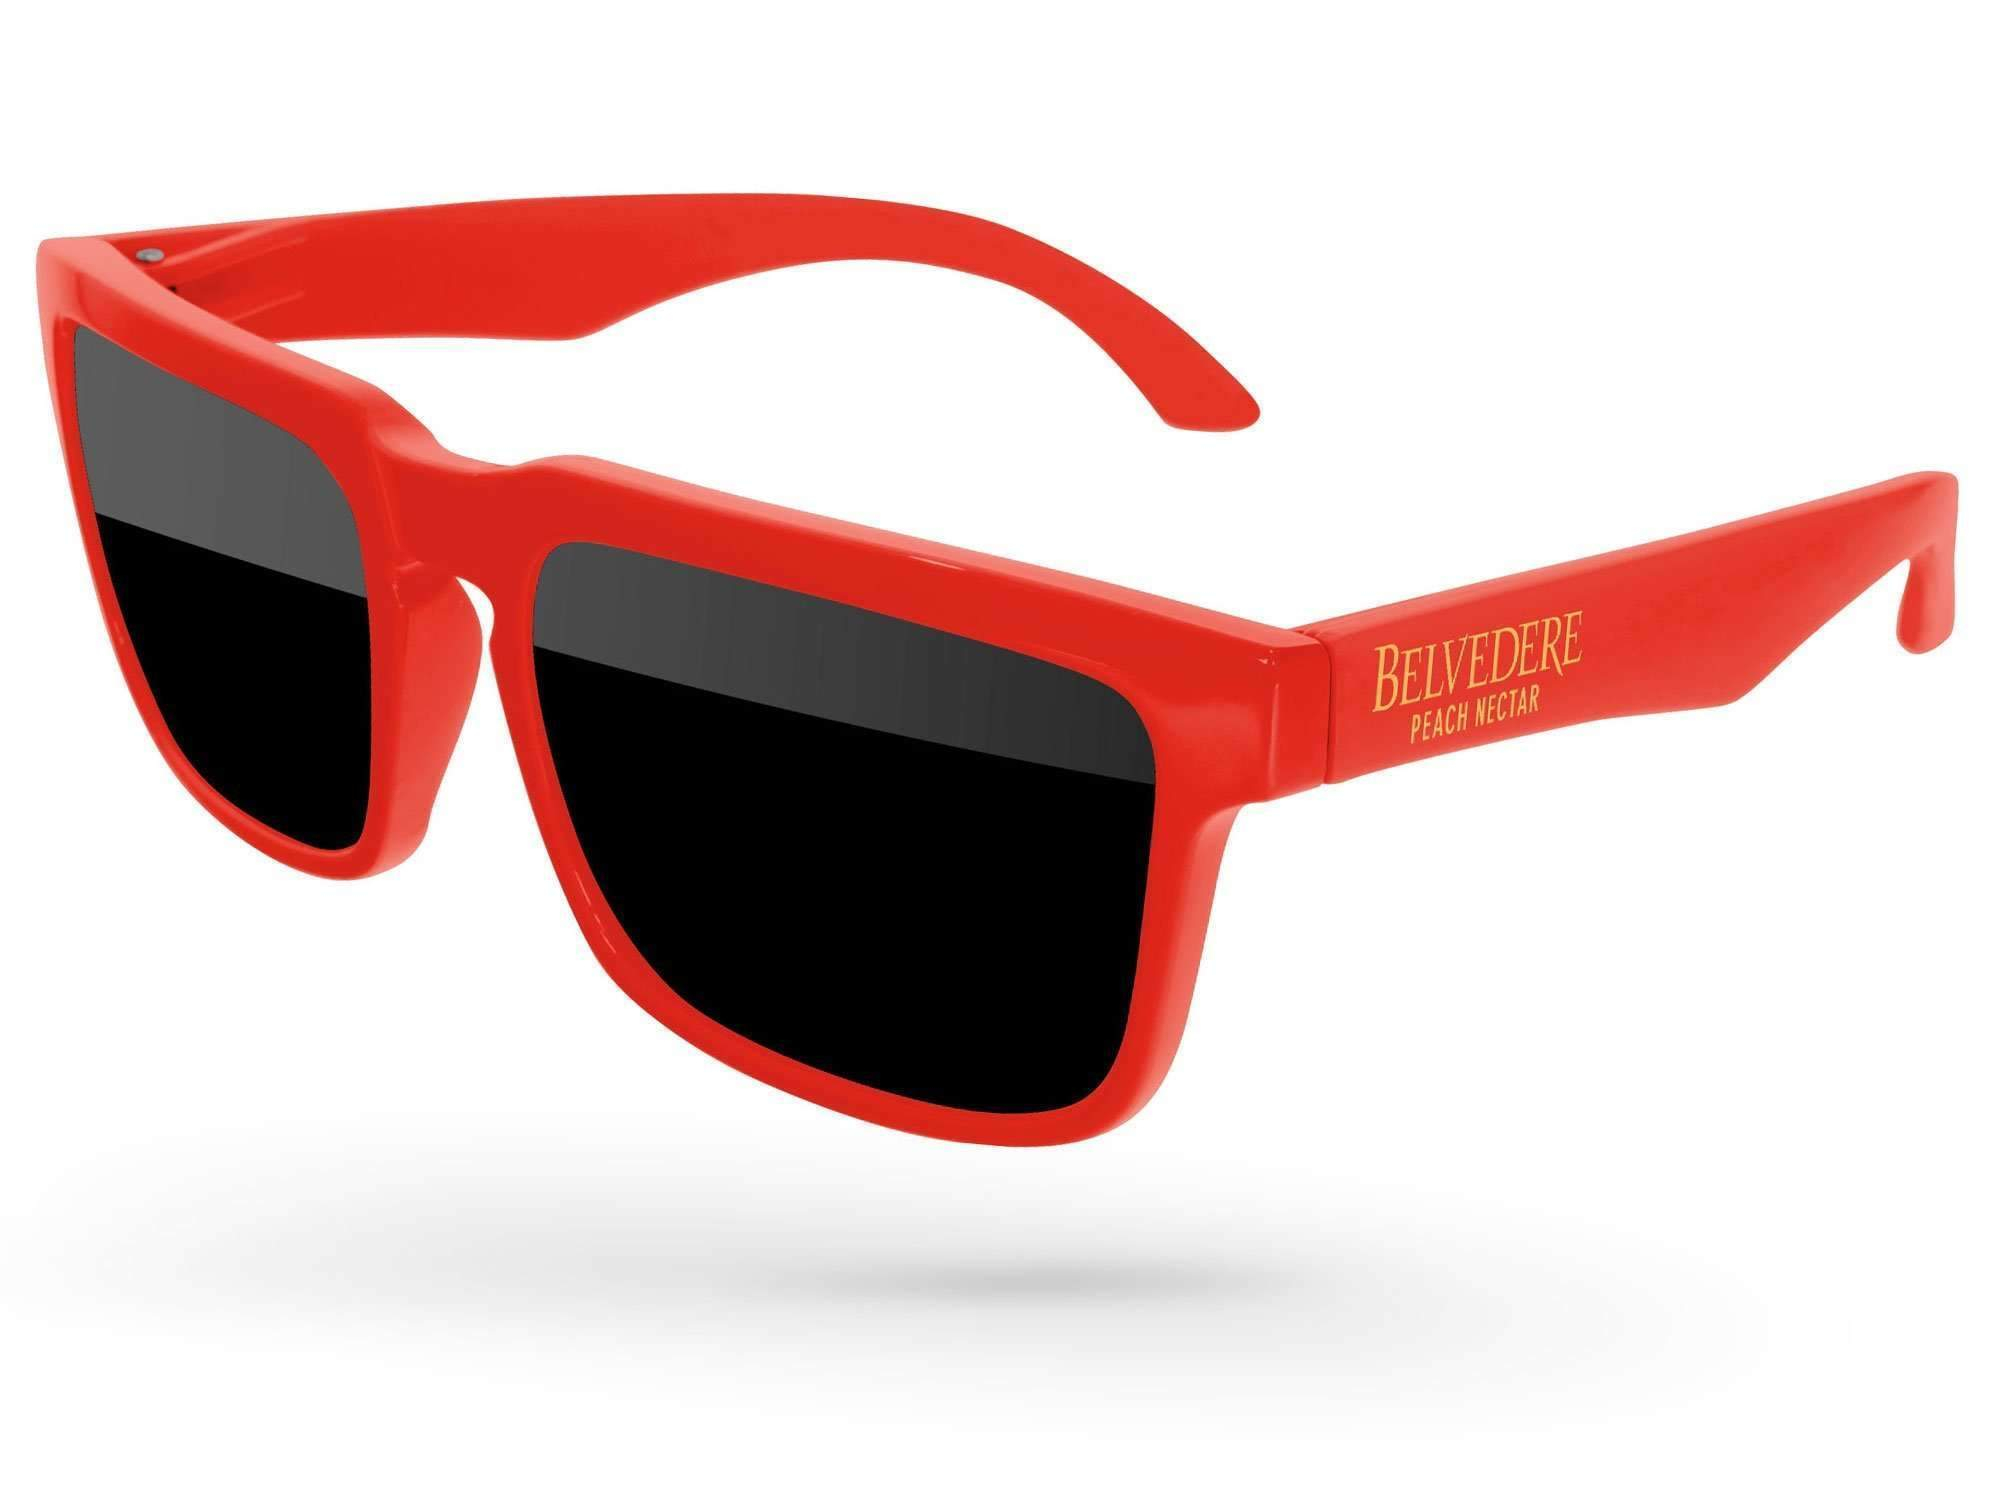 HD010 - Heat Promotional Sunglasses w/ 1-color temple imprint